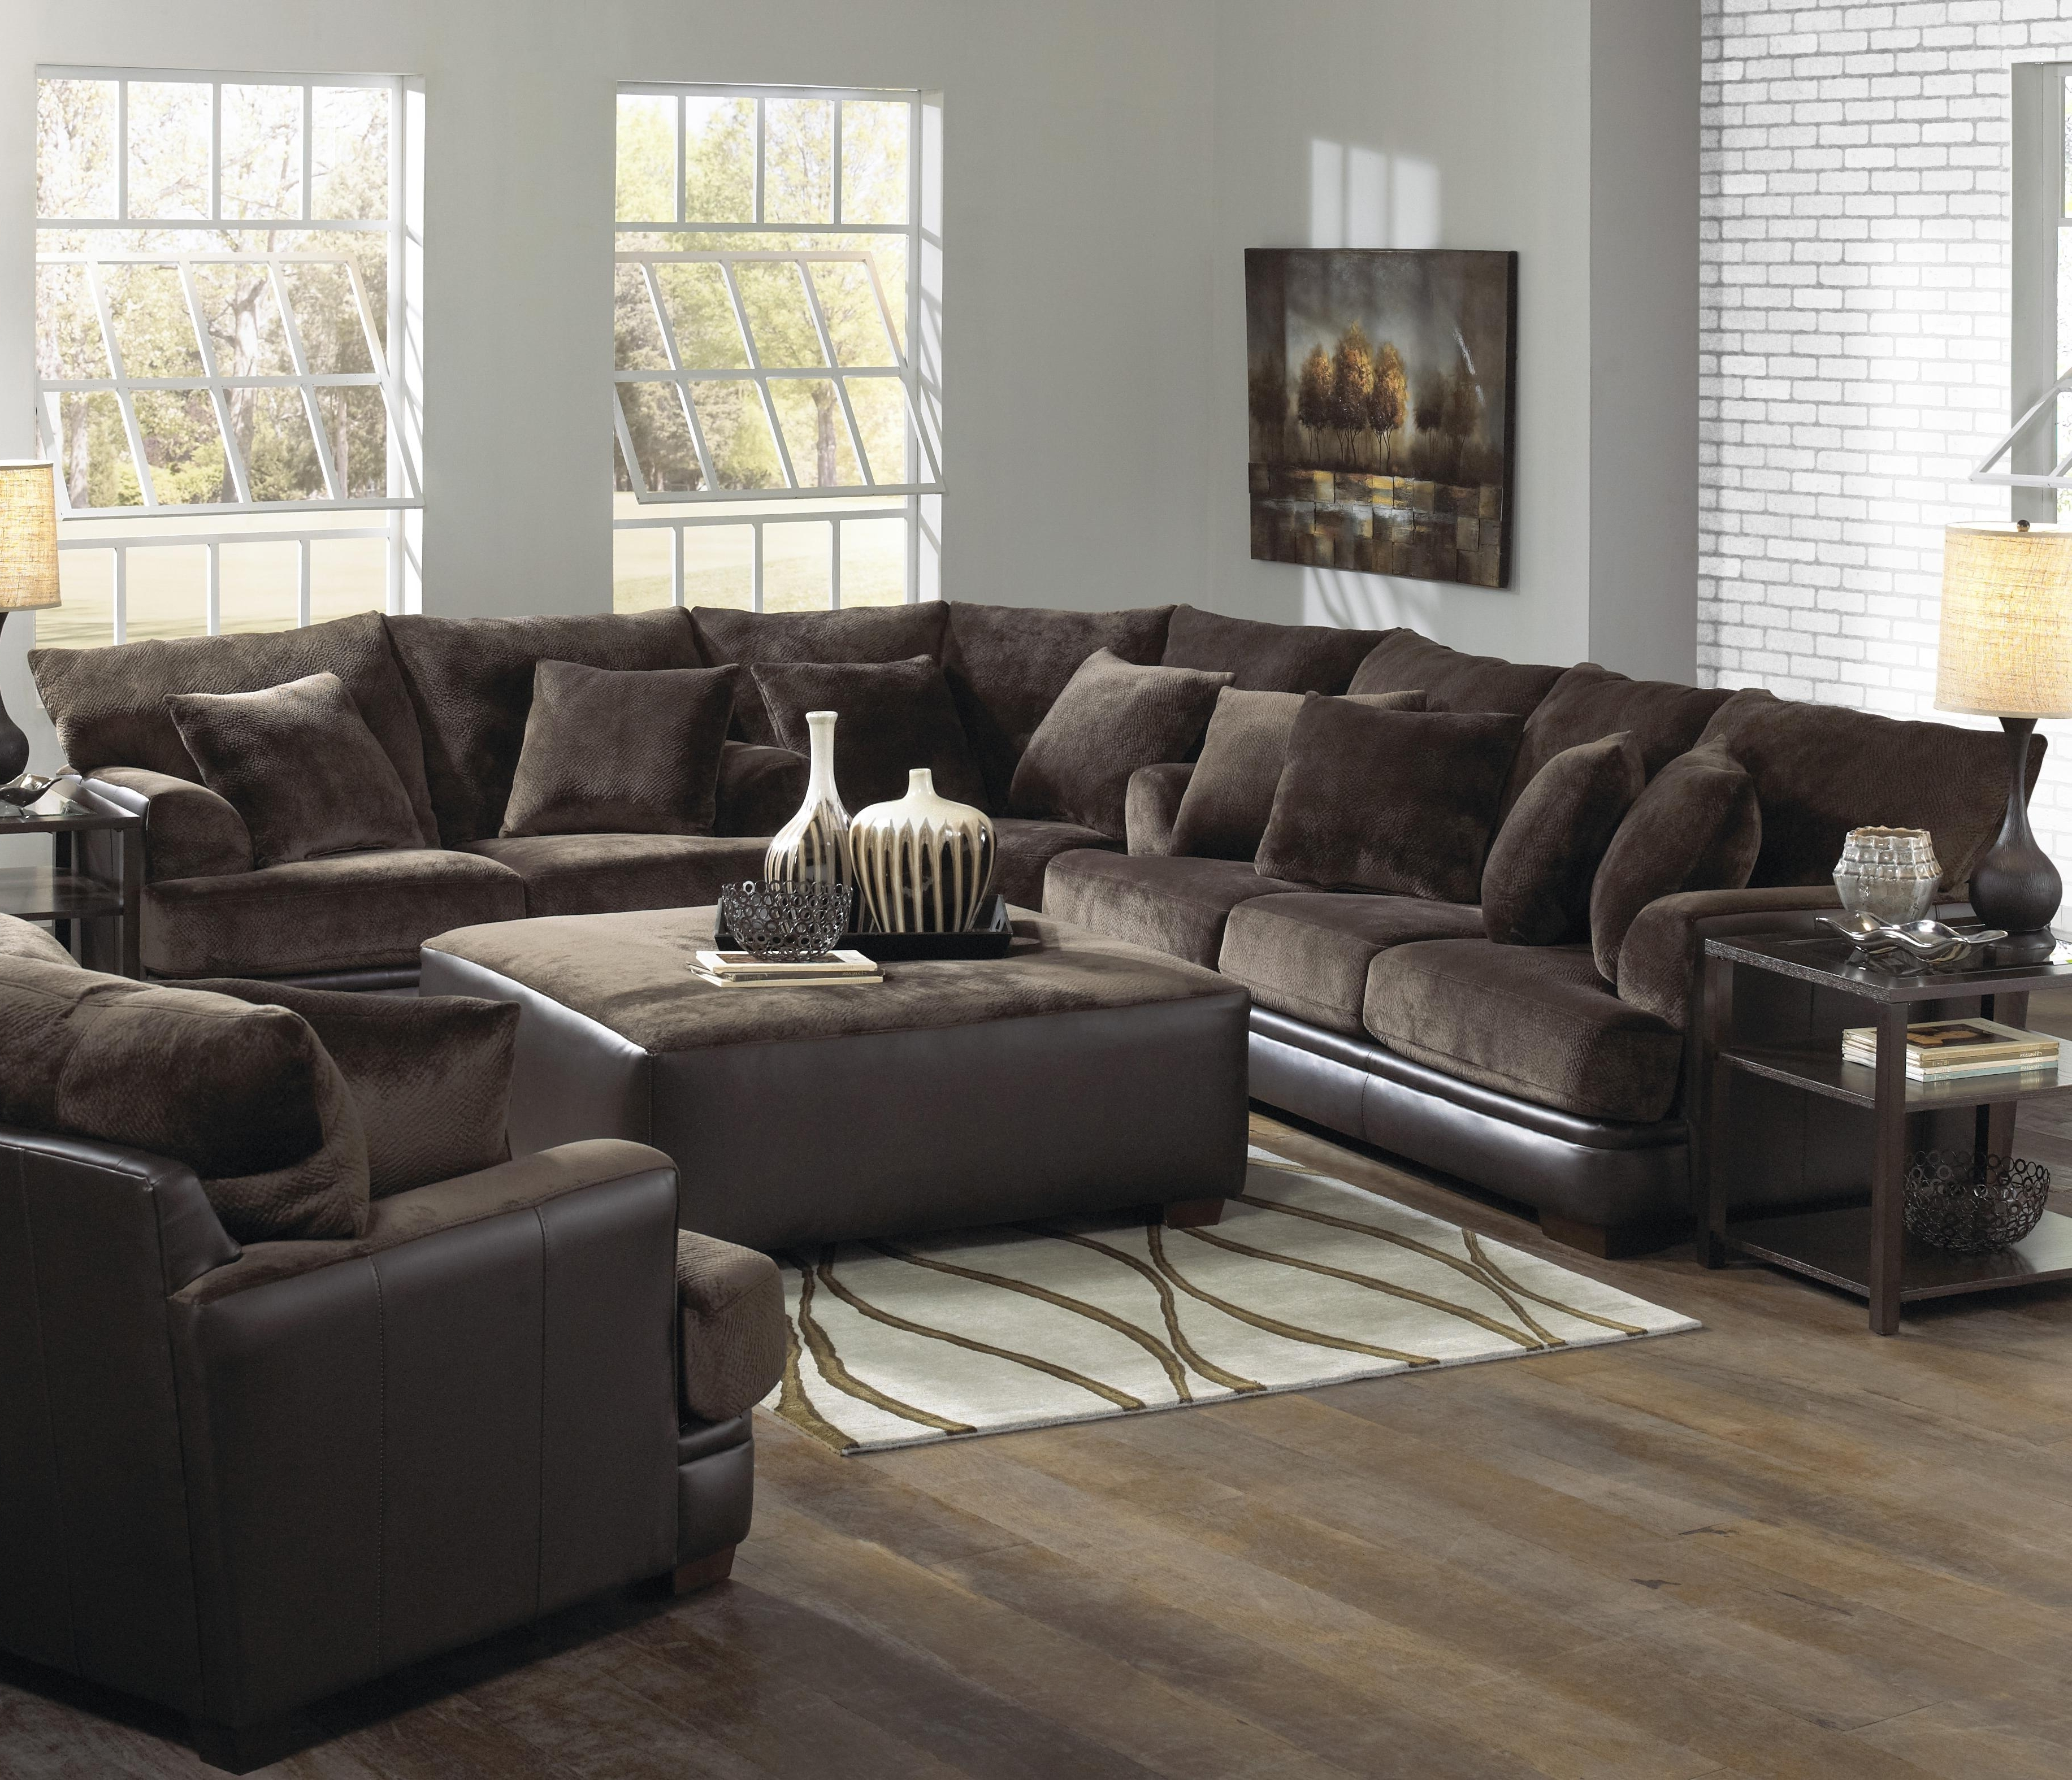 Extra Large Sectional Sofas (View 8 of 20)